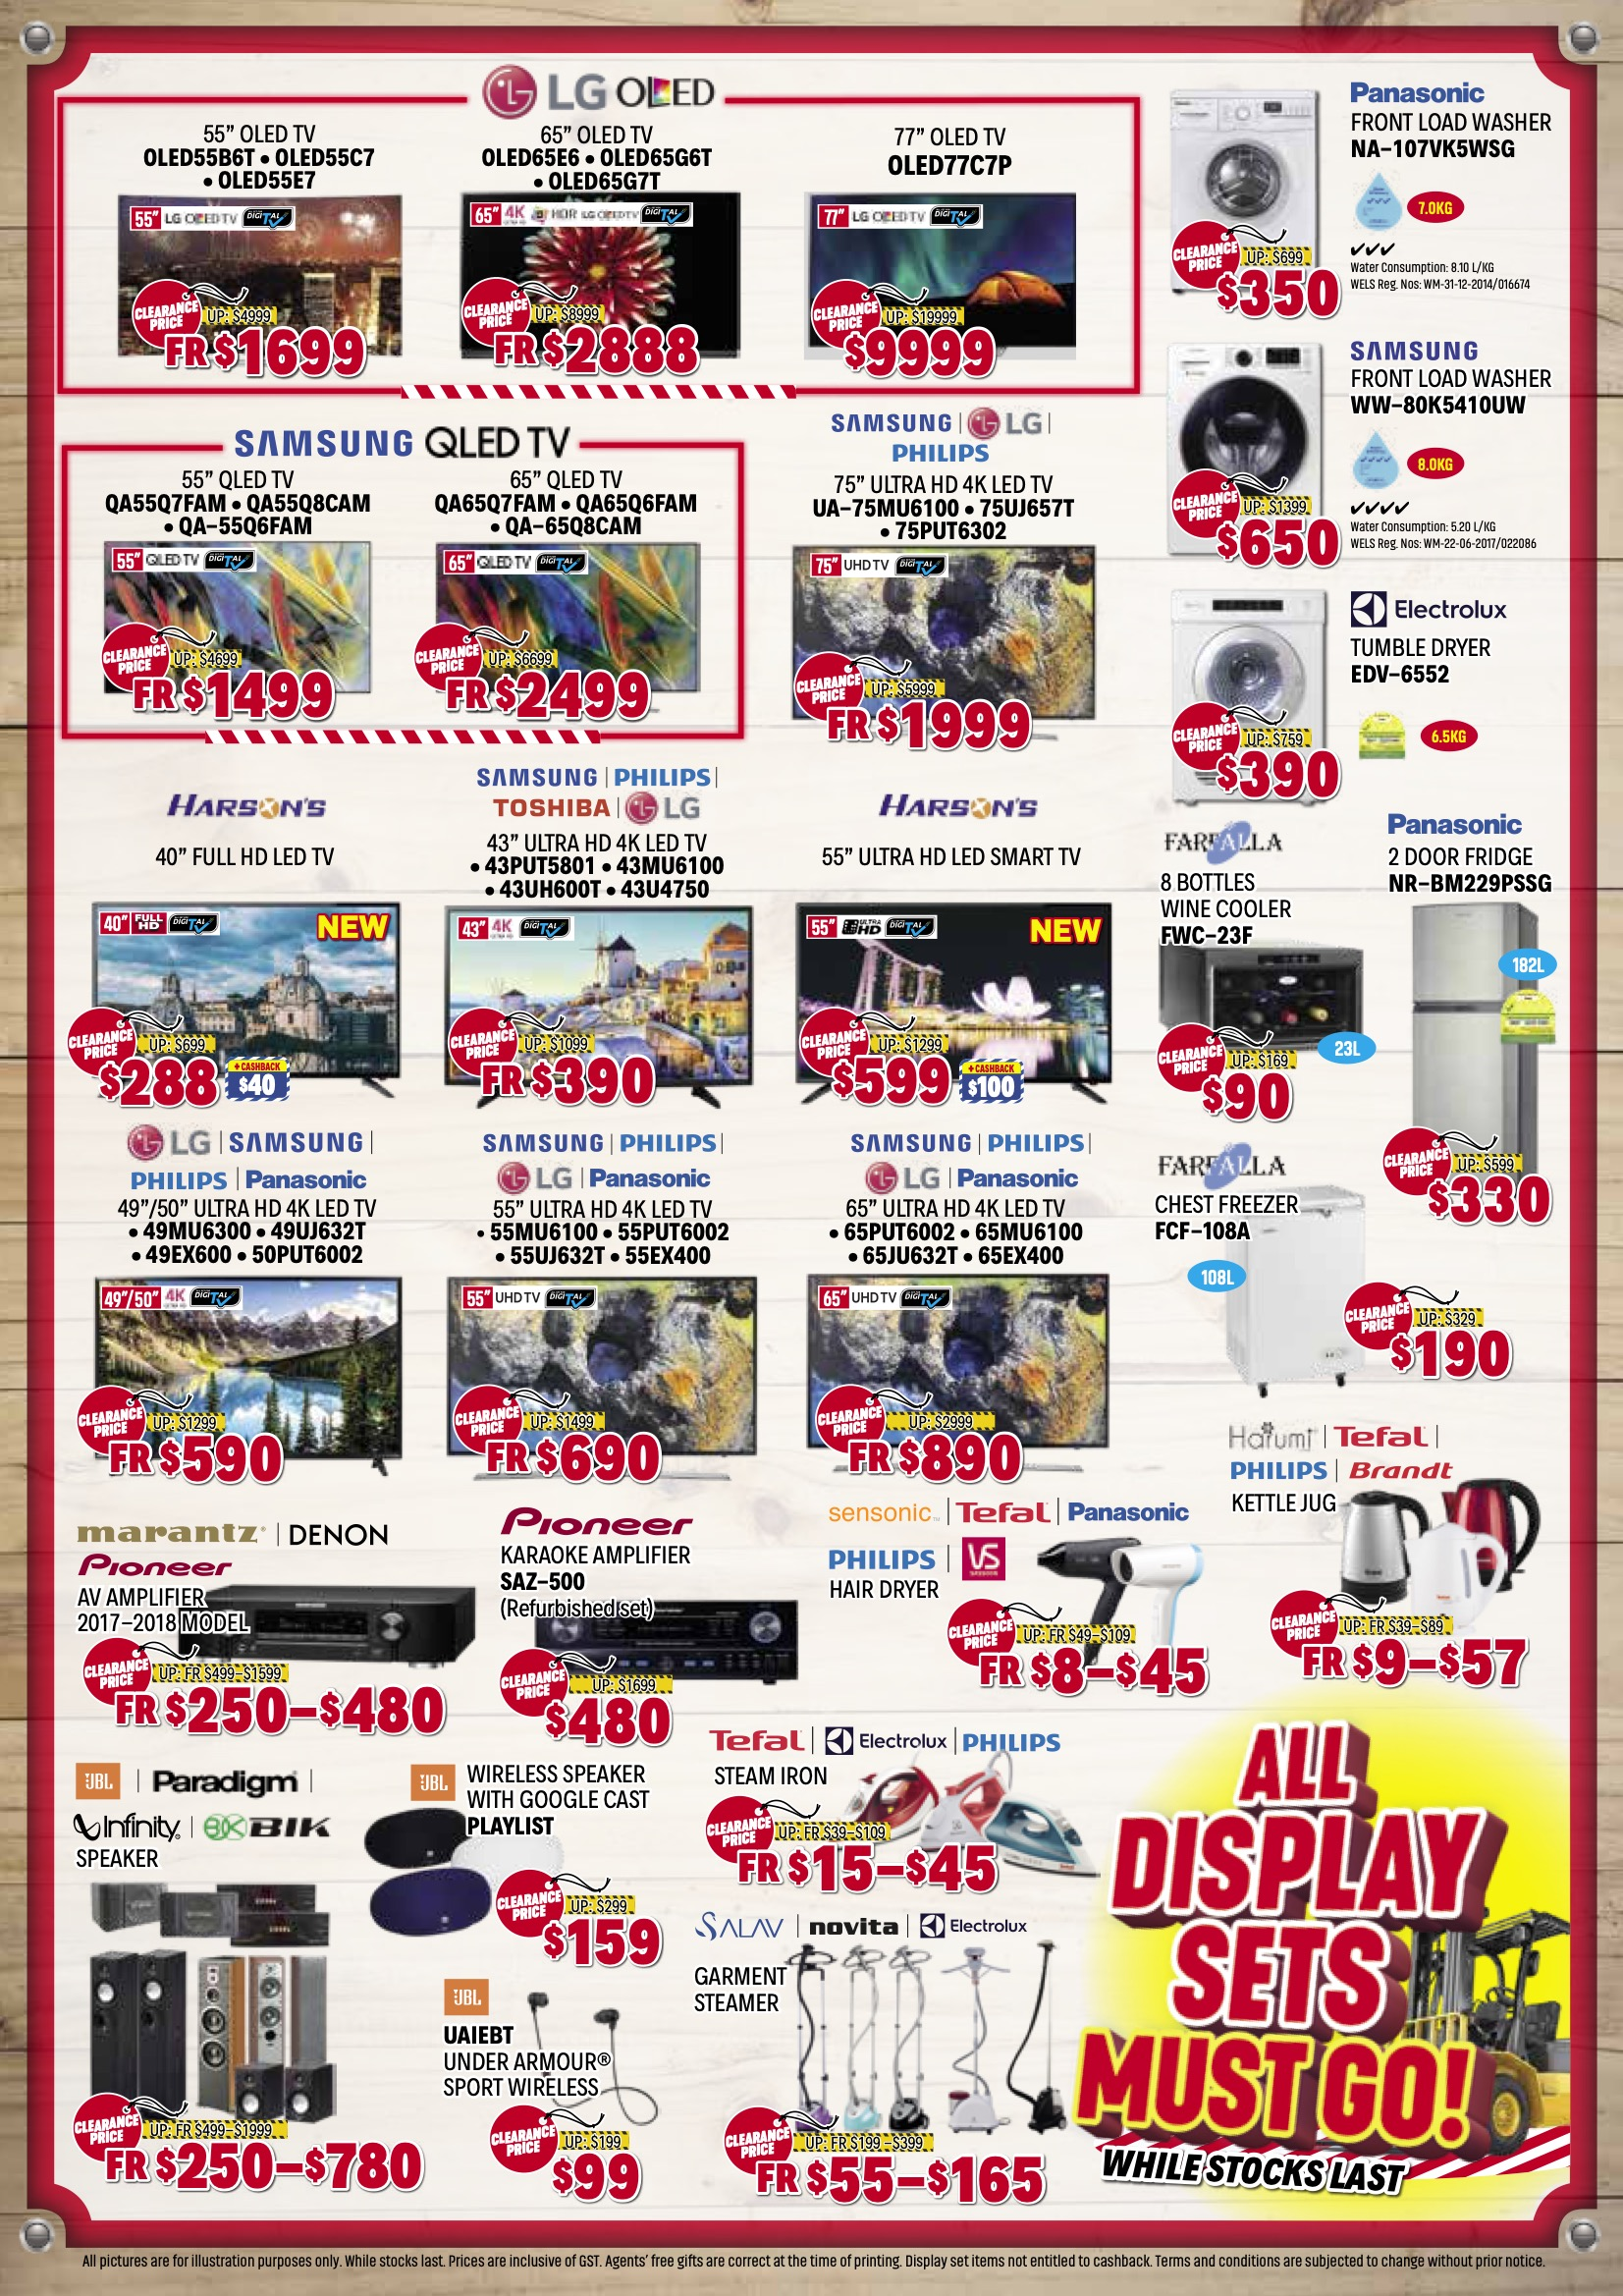 Audio House Singapore Warehouse Sale Up to 90% Off Promotion 11-26 May 2019 | Why Not Deals 2 & Promotions